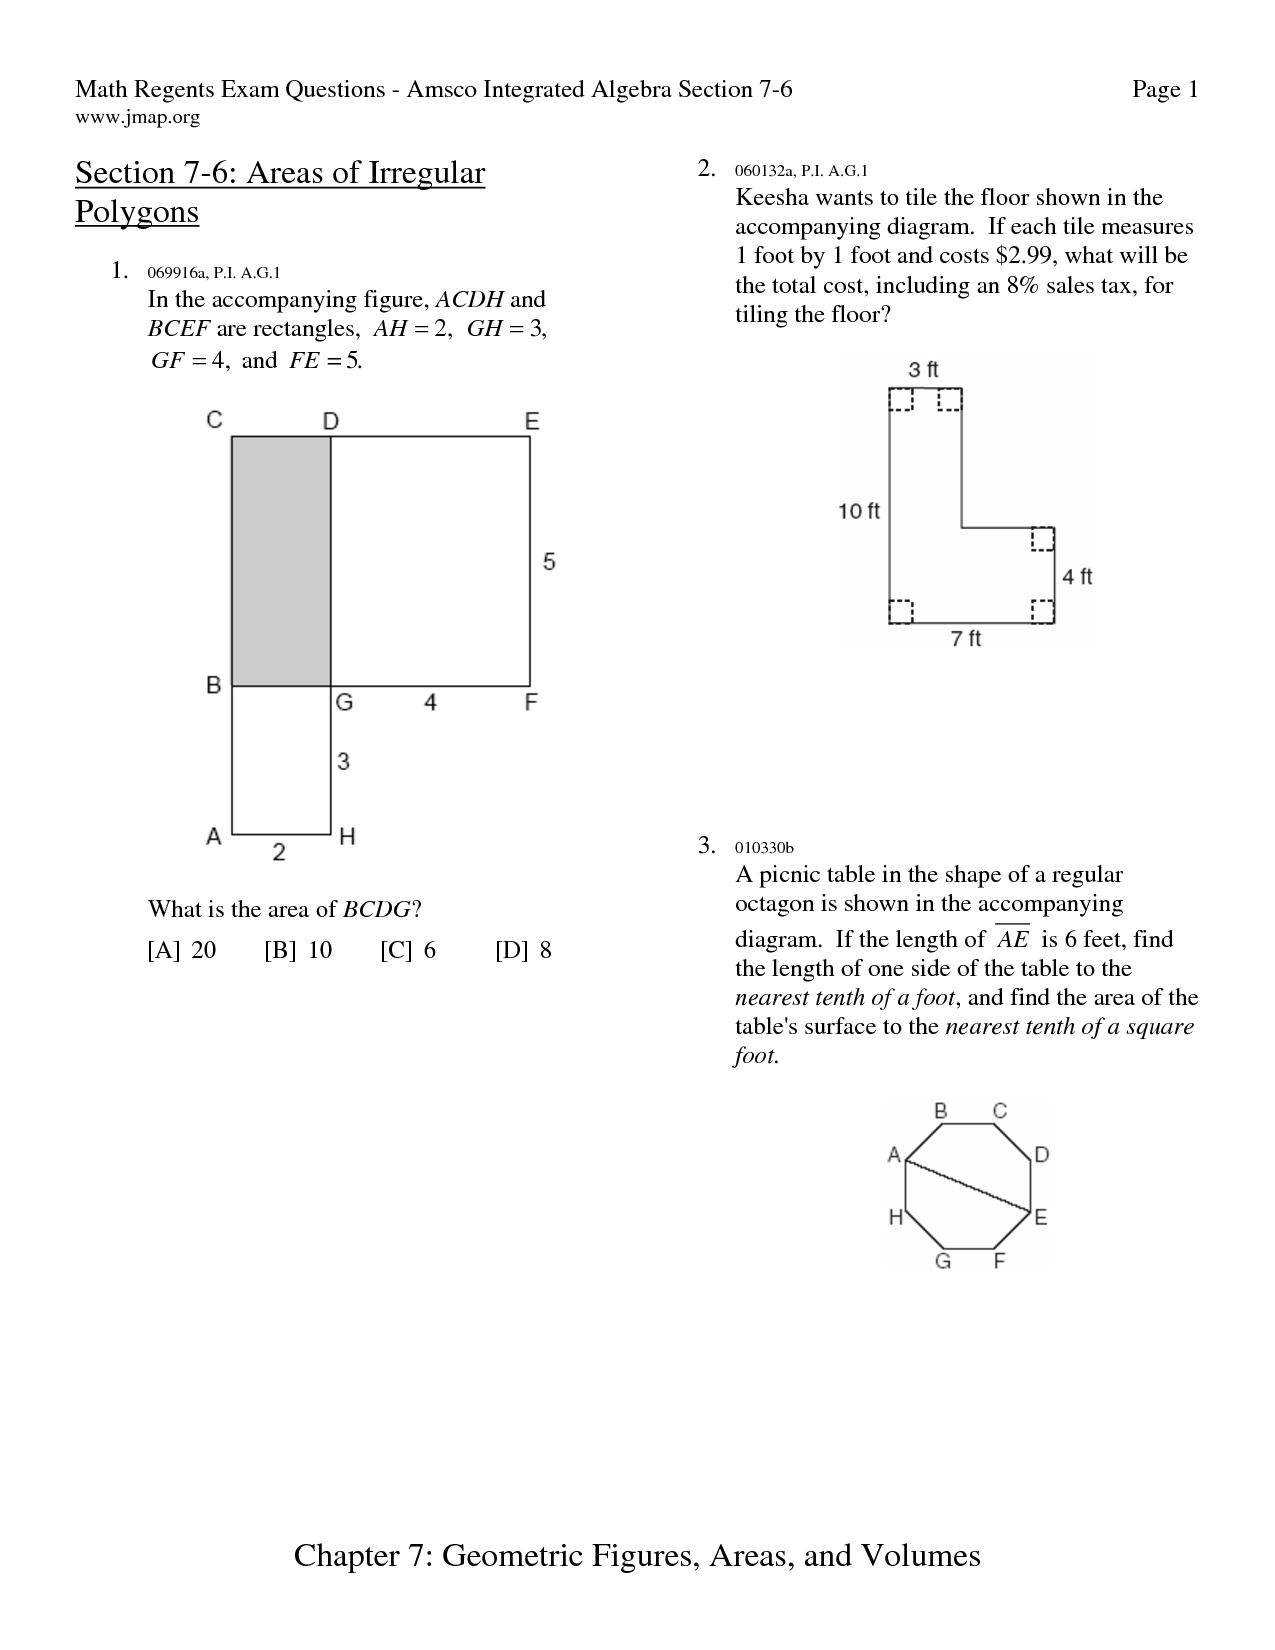 How To Find The Perimeter Of A Irregular Polygon